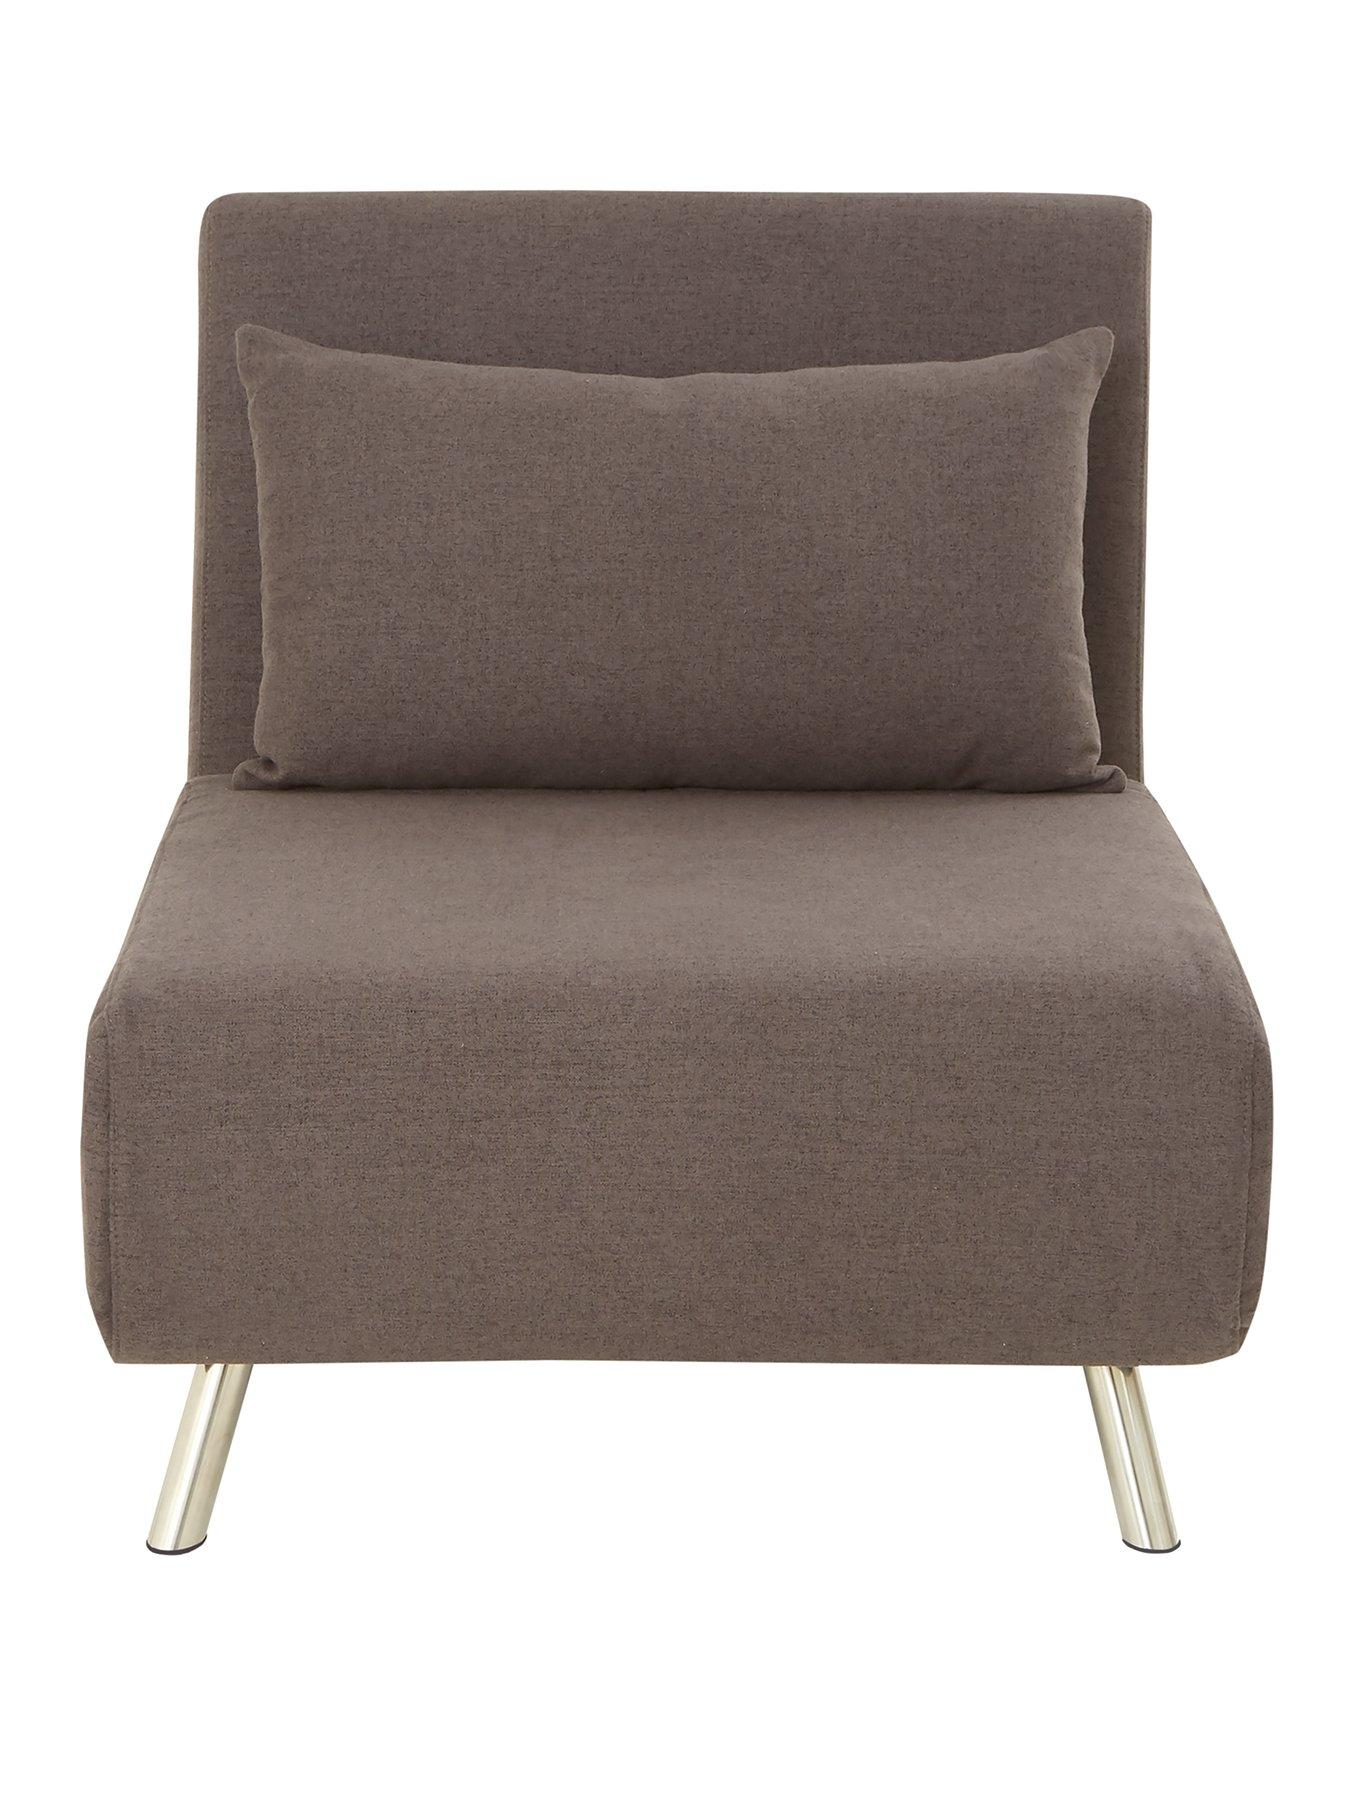 single chair sofa beds flexsteel review very co uk relax fabric small bed